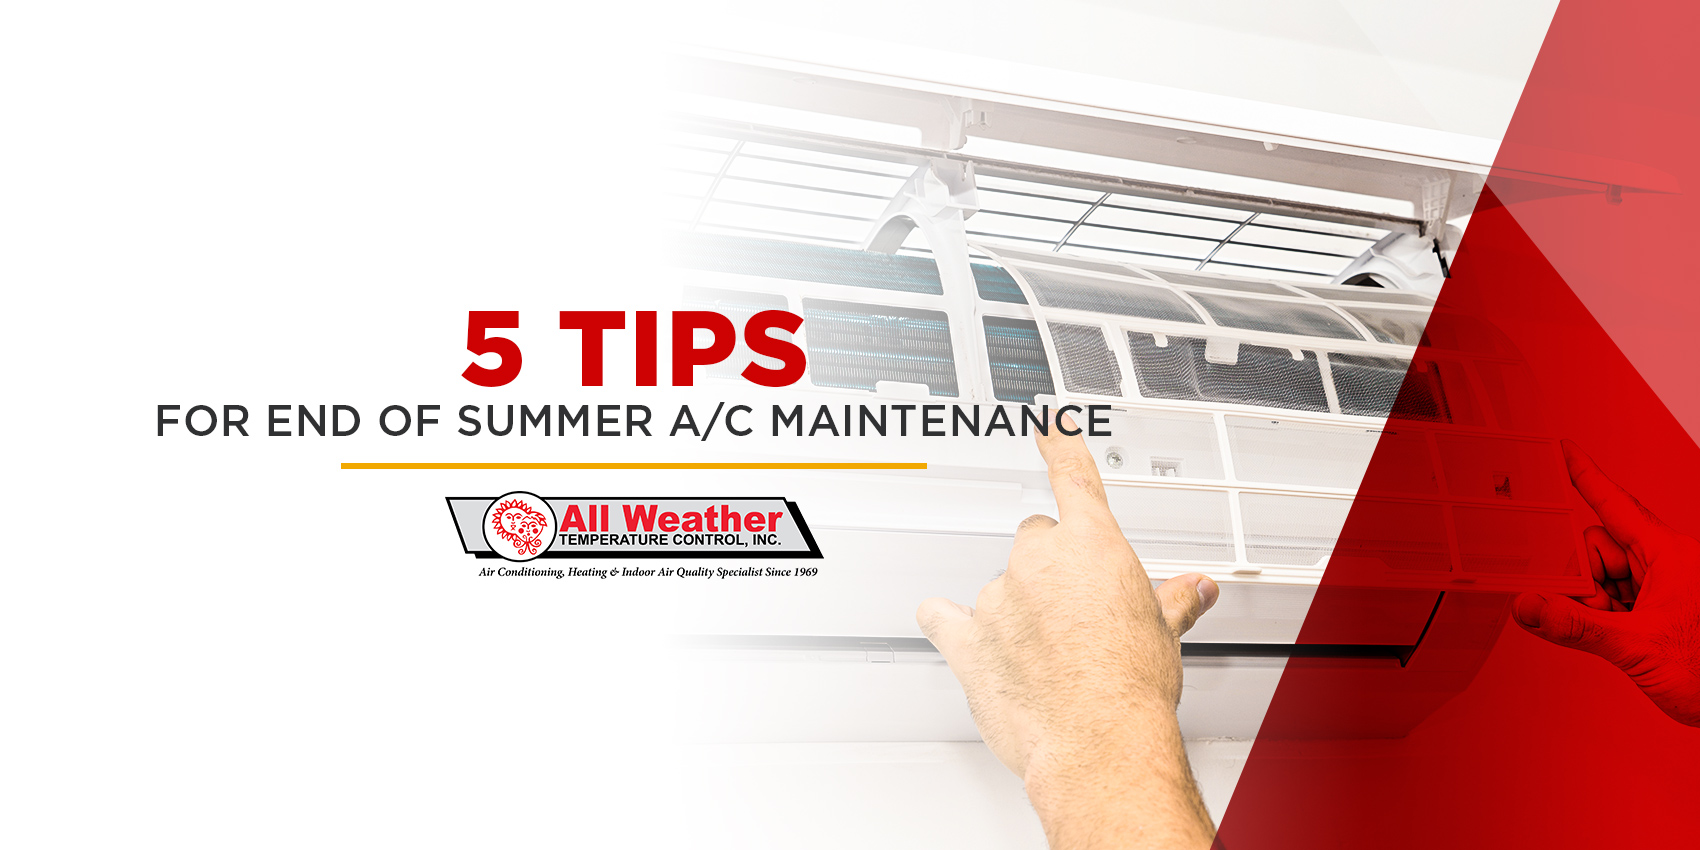 5 Tips for End-of-Summer A/C Maintenance